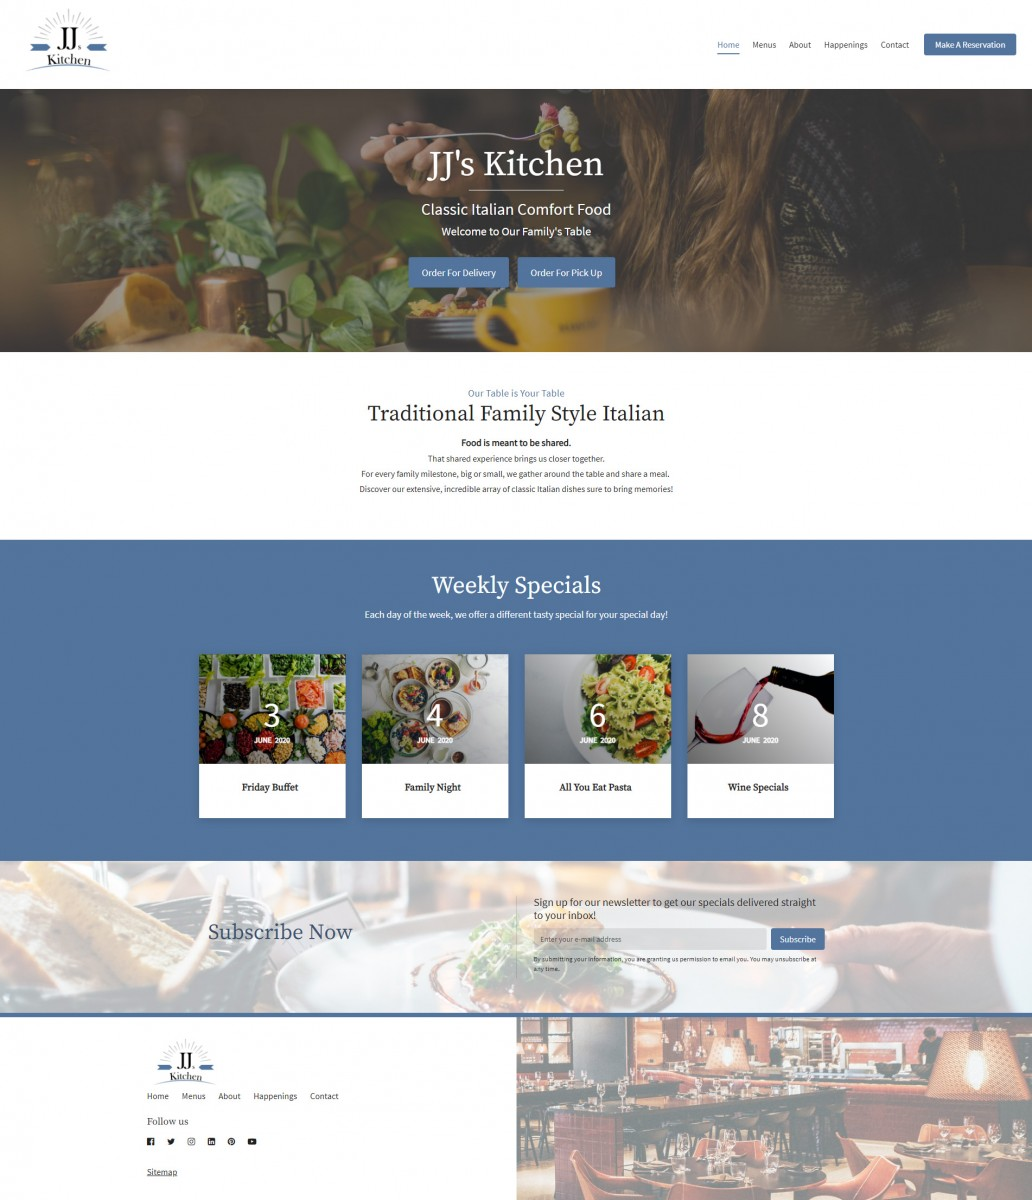 JJ's French Kitchen Website Example